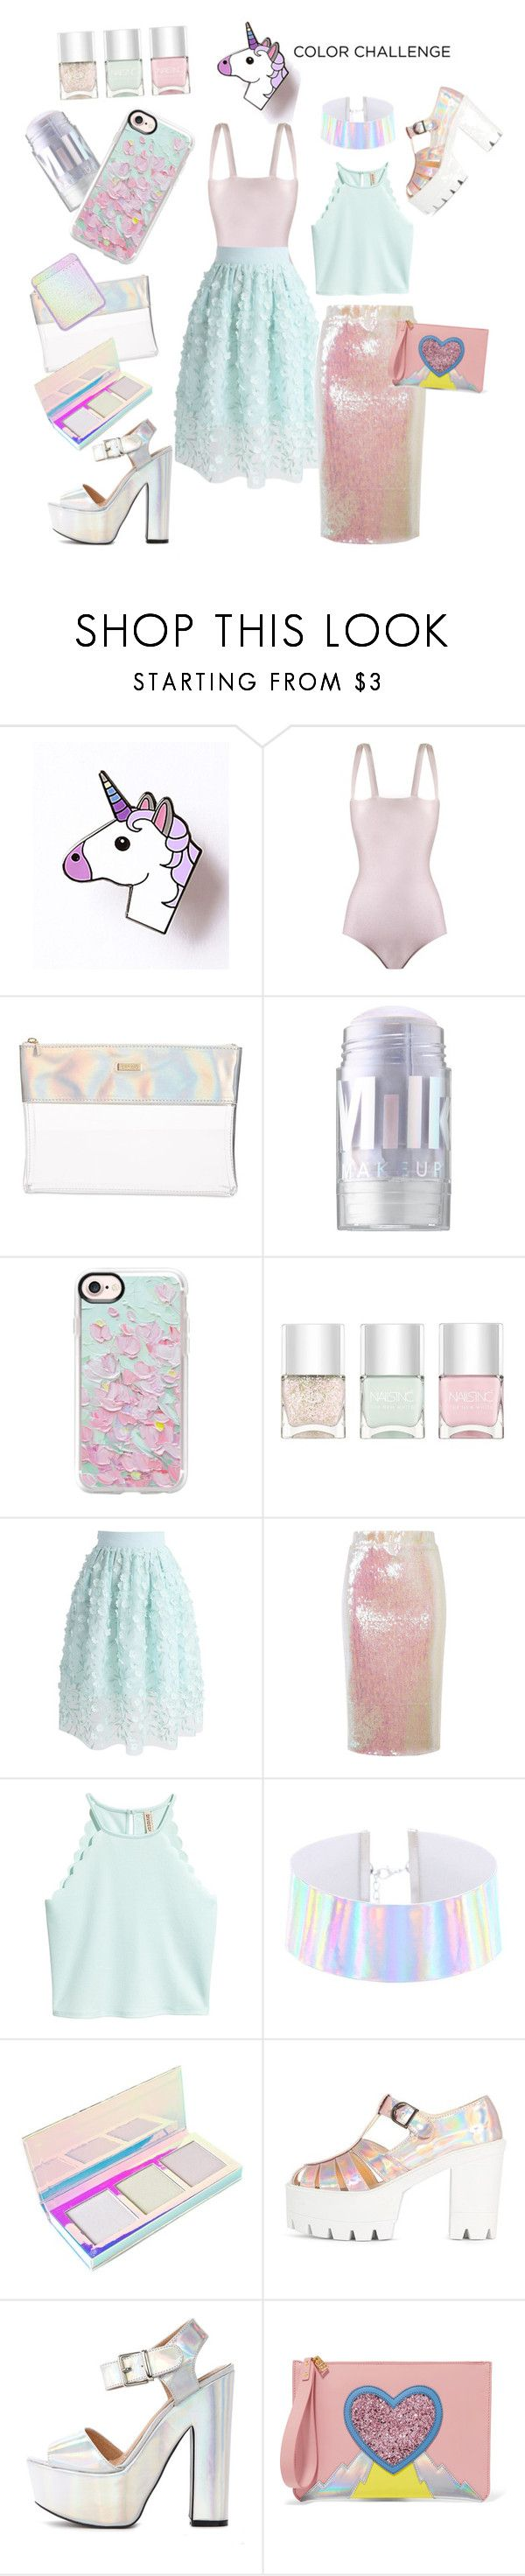 """""""Unicorn Color Palette!"""" by egchee ❤ liked on Polyvore featuring ADRIANA DEGREAS, ban.do, MILK MAKEUP, Casetify, Nails Inc., Chicwish, Essentiel, Lime Crime and Sophie Hulme"""